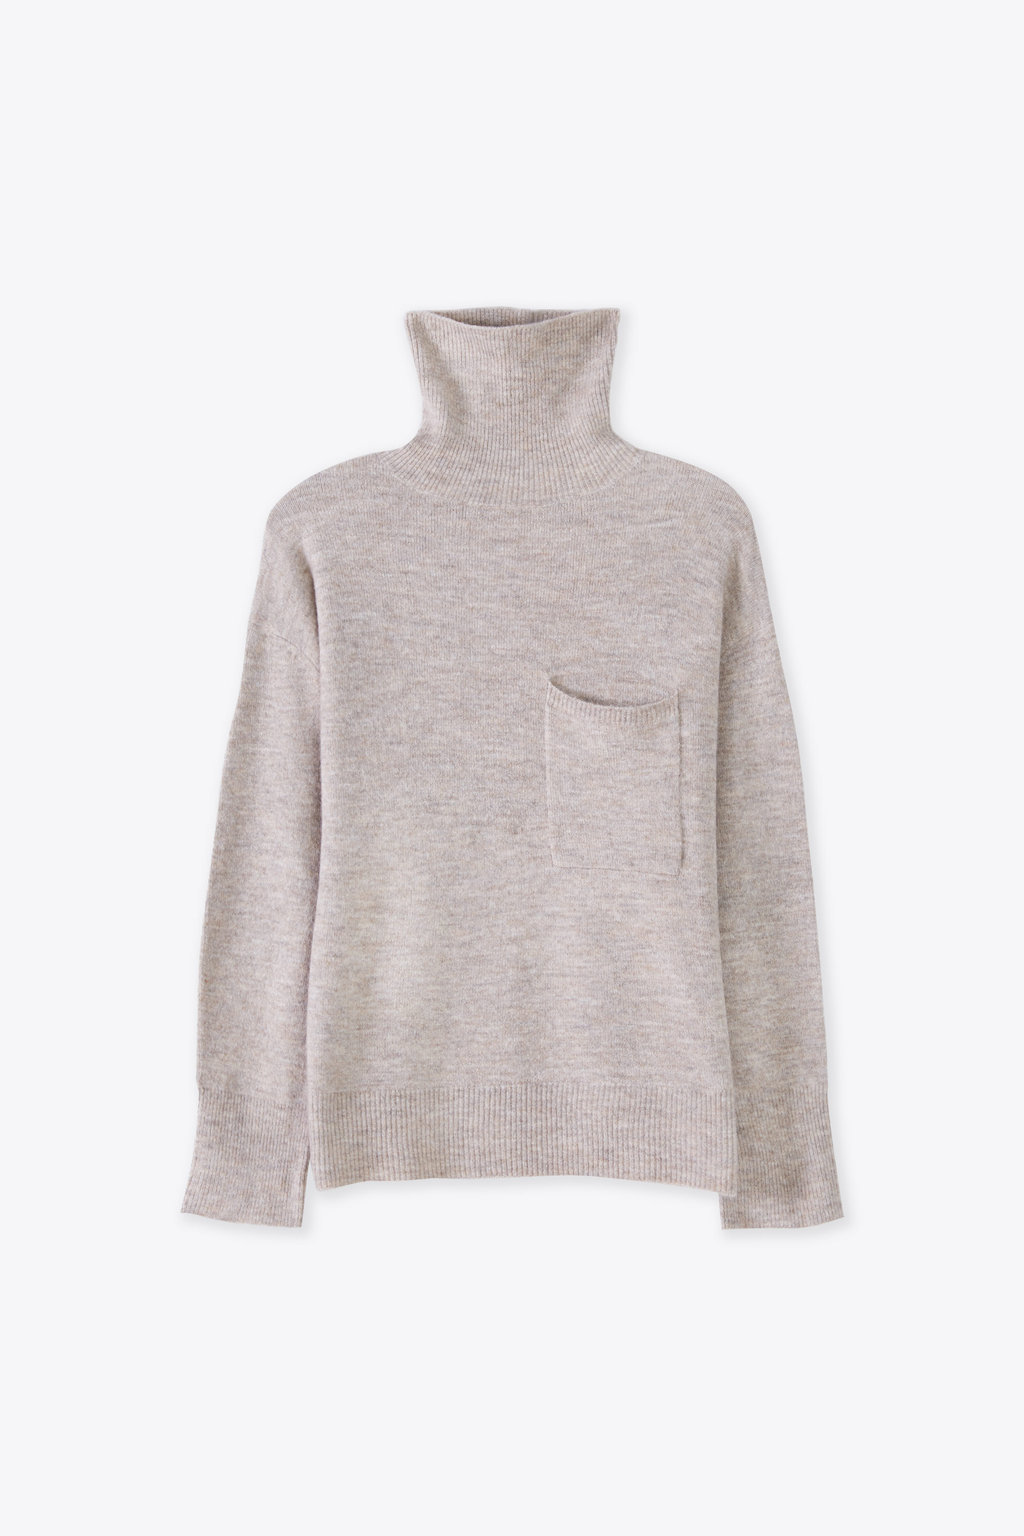 Sweater 2406 Taupe 5